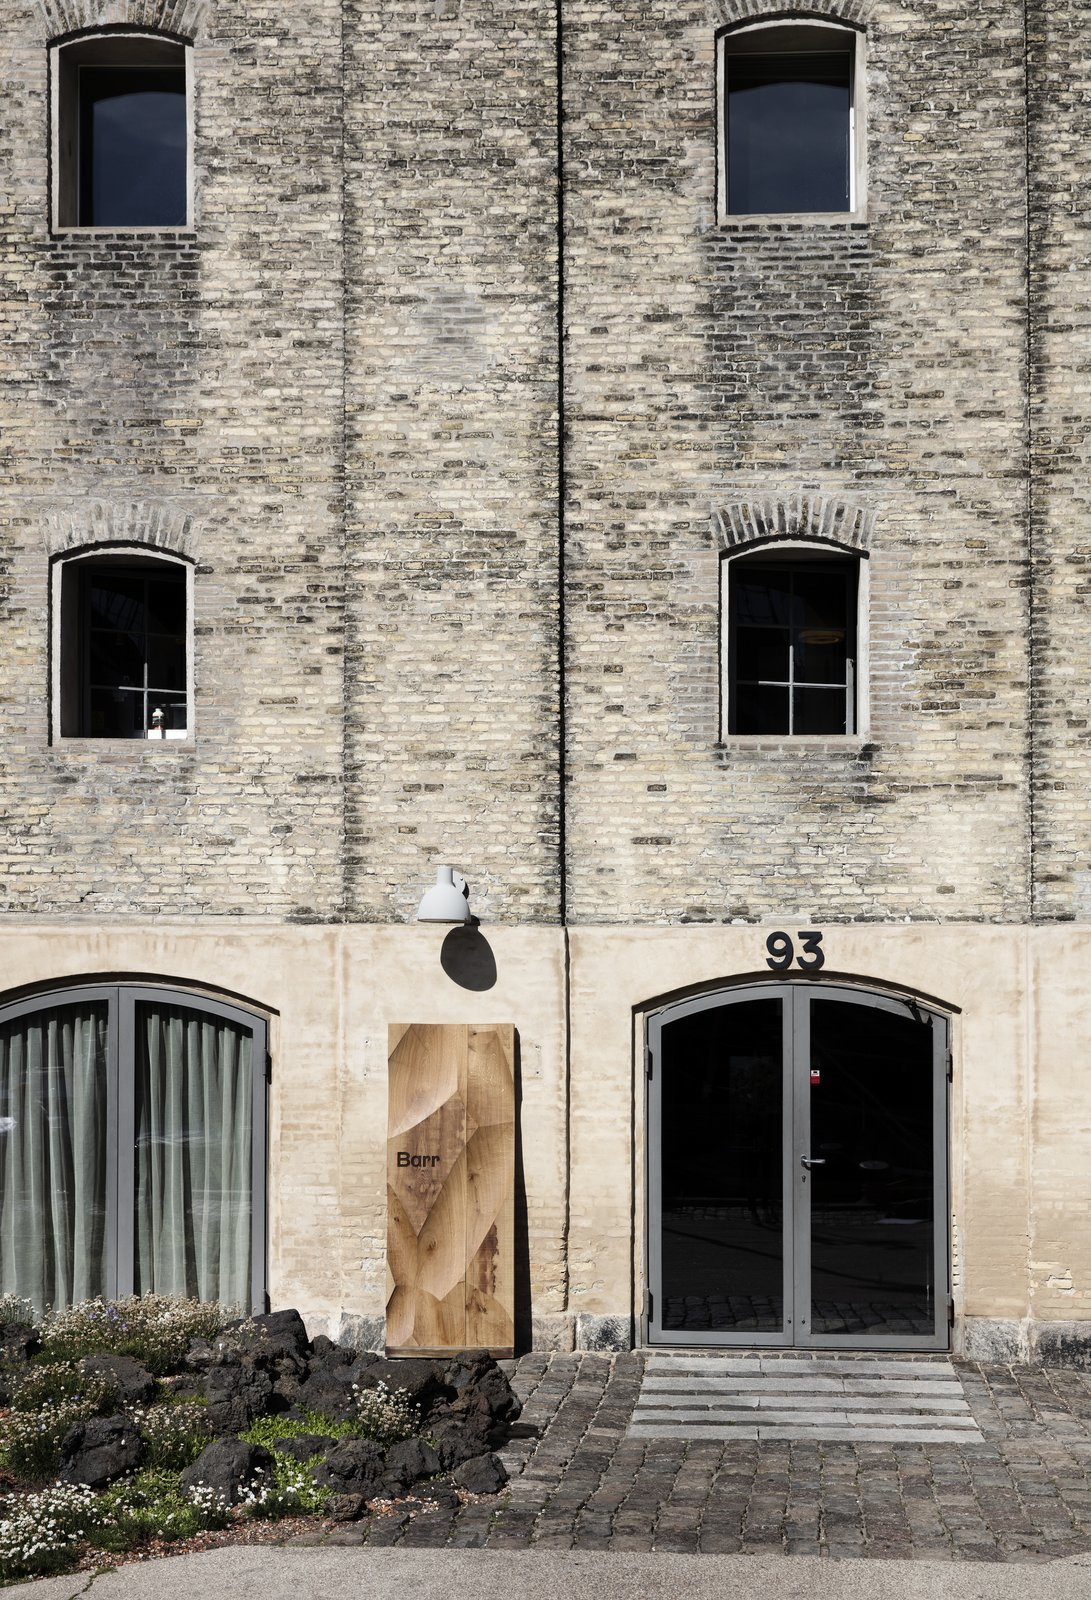 Barr opened its doors on July 5 and can be found on Copenhagen\u0027s waterfront inside the & Photo 2 of 10 in Snøhetta Designs the Interiors of Barr the Noma ...